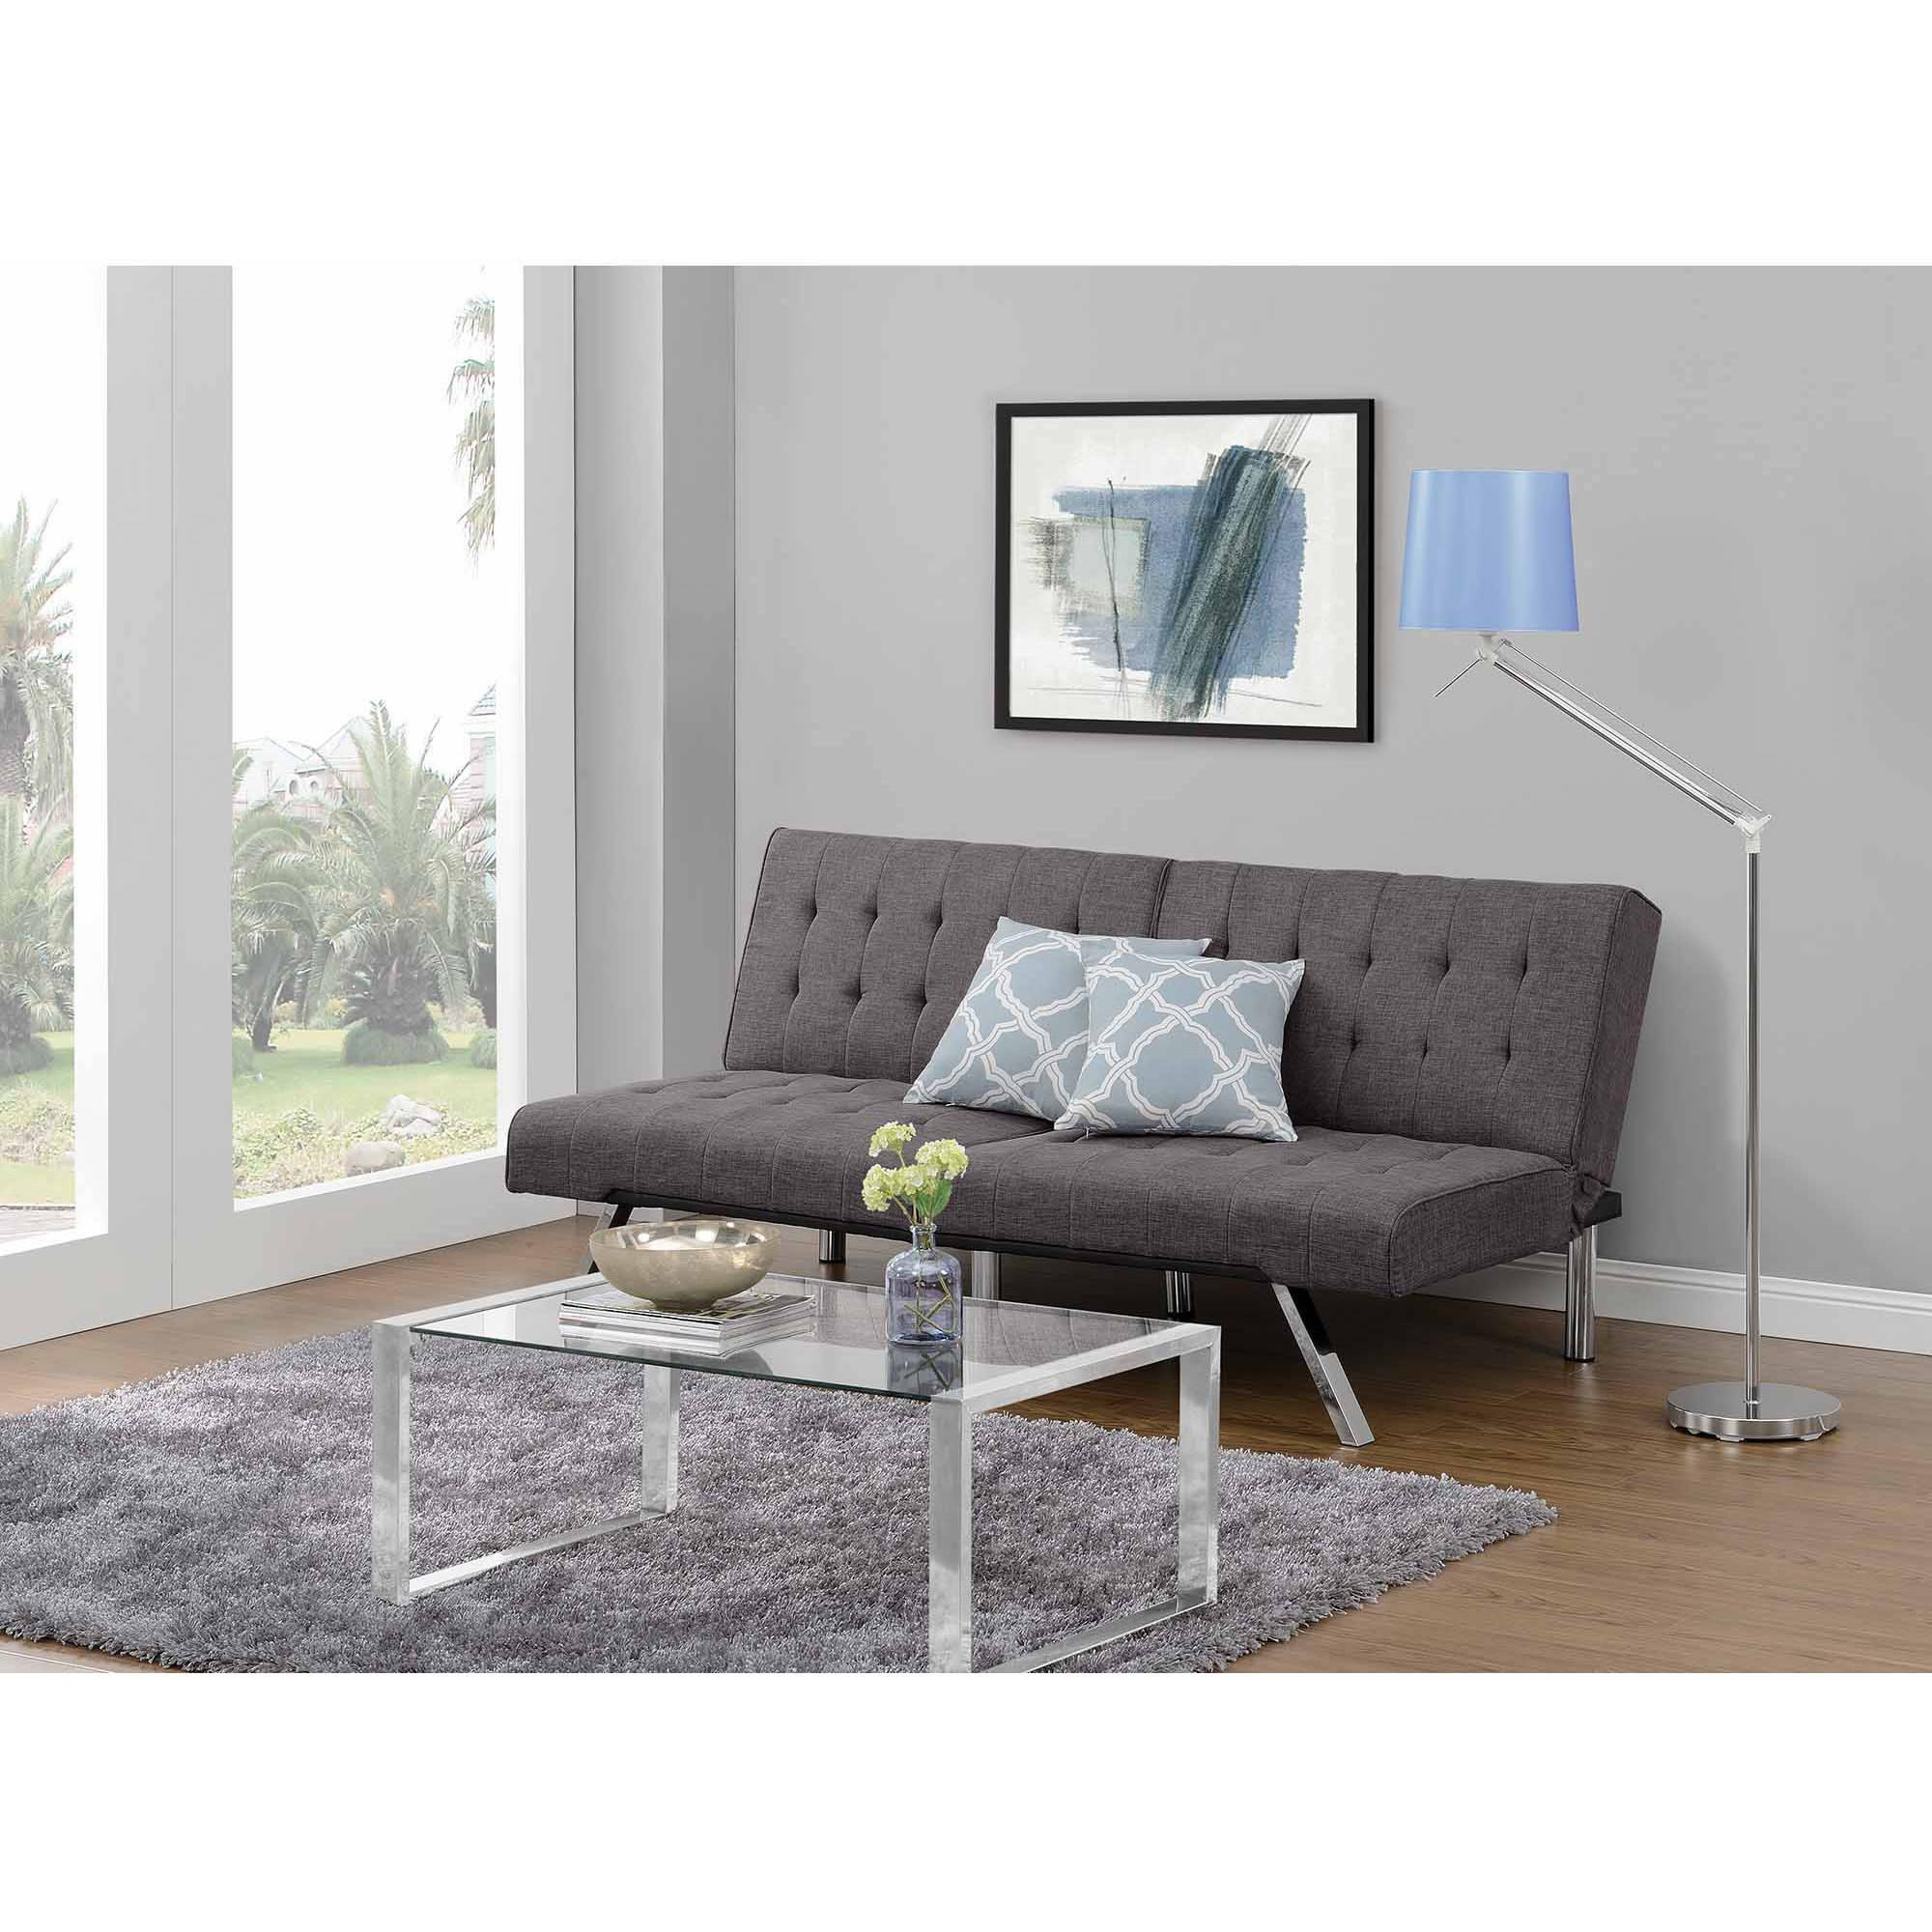 Futons, Futon Beds, Sofa Beds – Walmart With Regard To Bedroom Sofas And Chairs (Image 16 of 20)